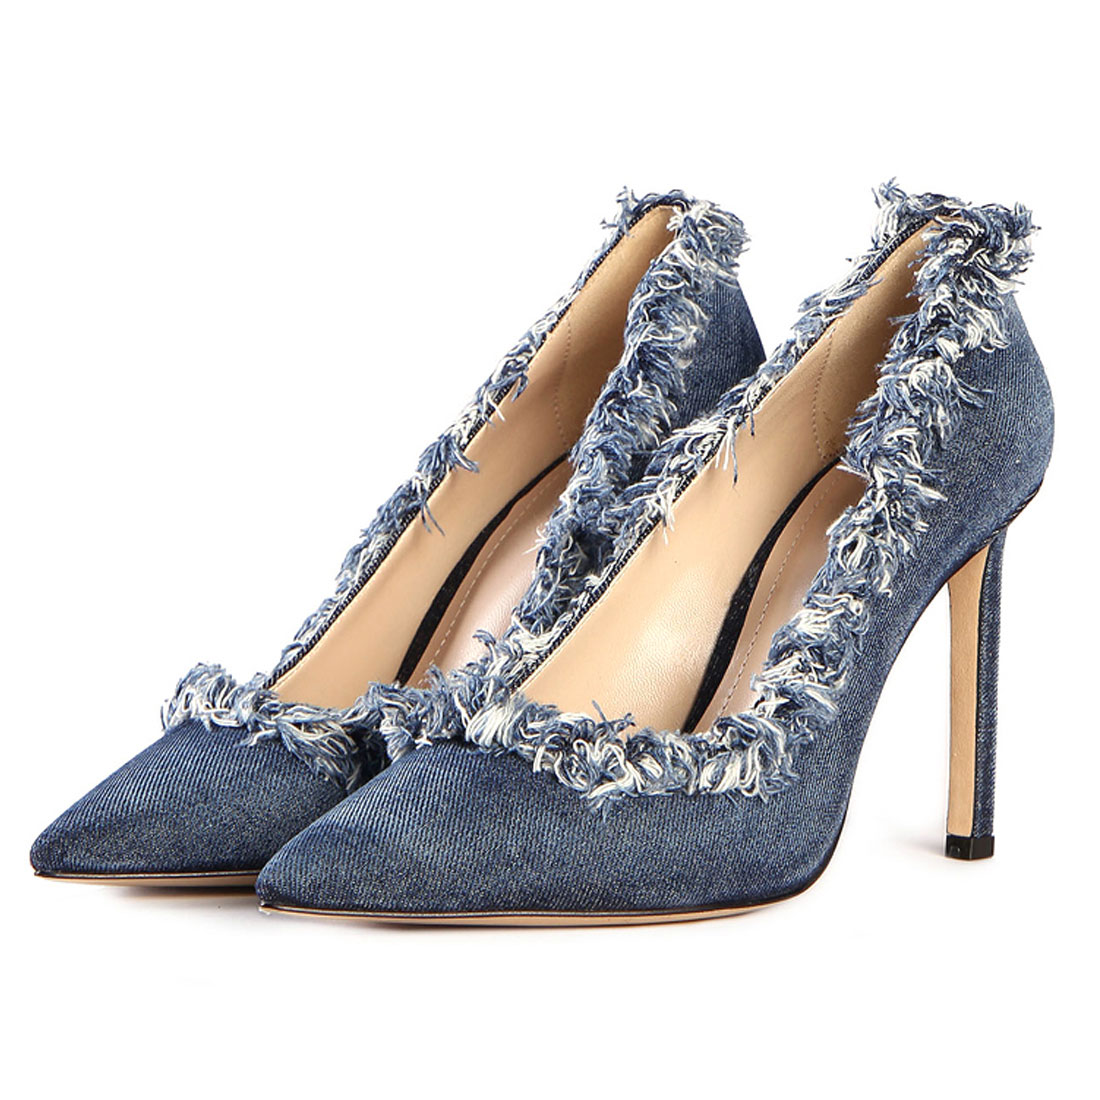 Chaussures Femme Summer Women High Heel Shoes Denim Office Ladies Shoes HHS1285